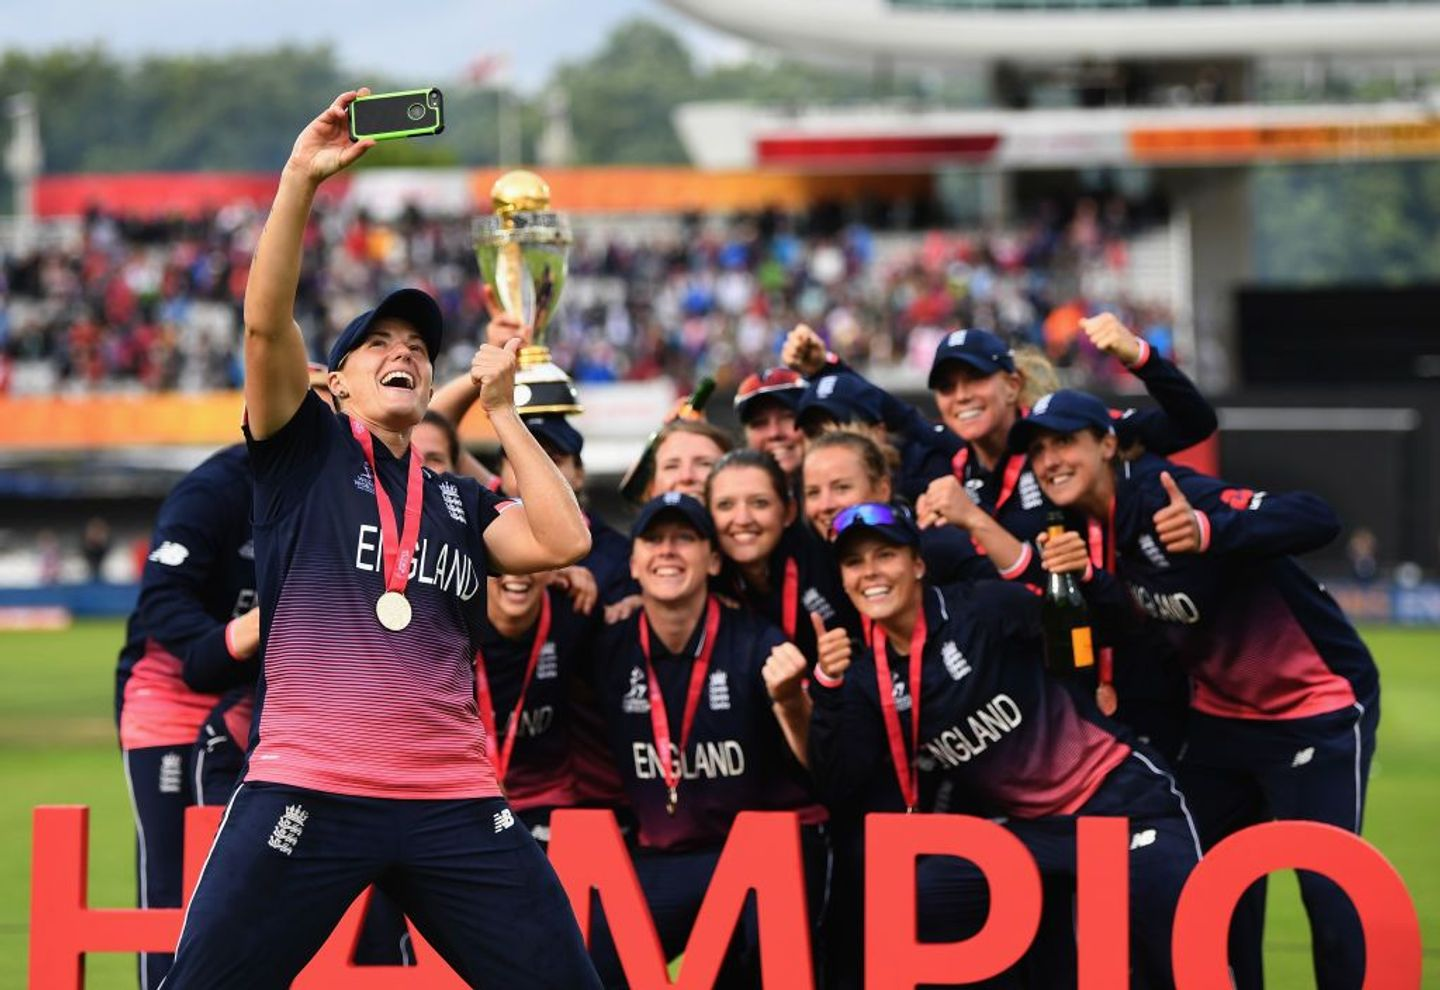 England Women celebrate their 2017 ICC World Cup win over India at a packed Lord's